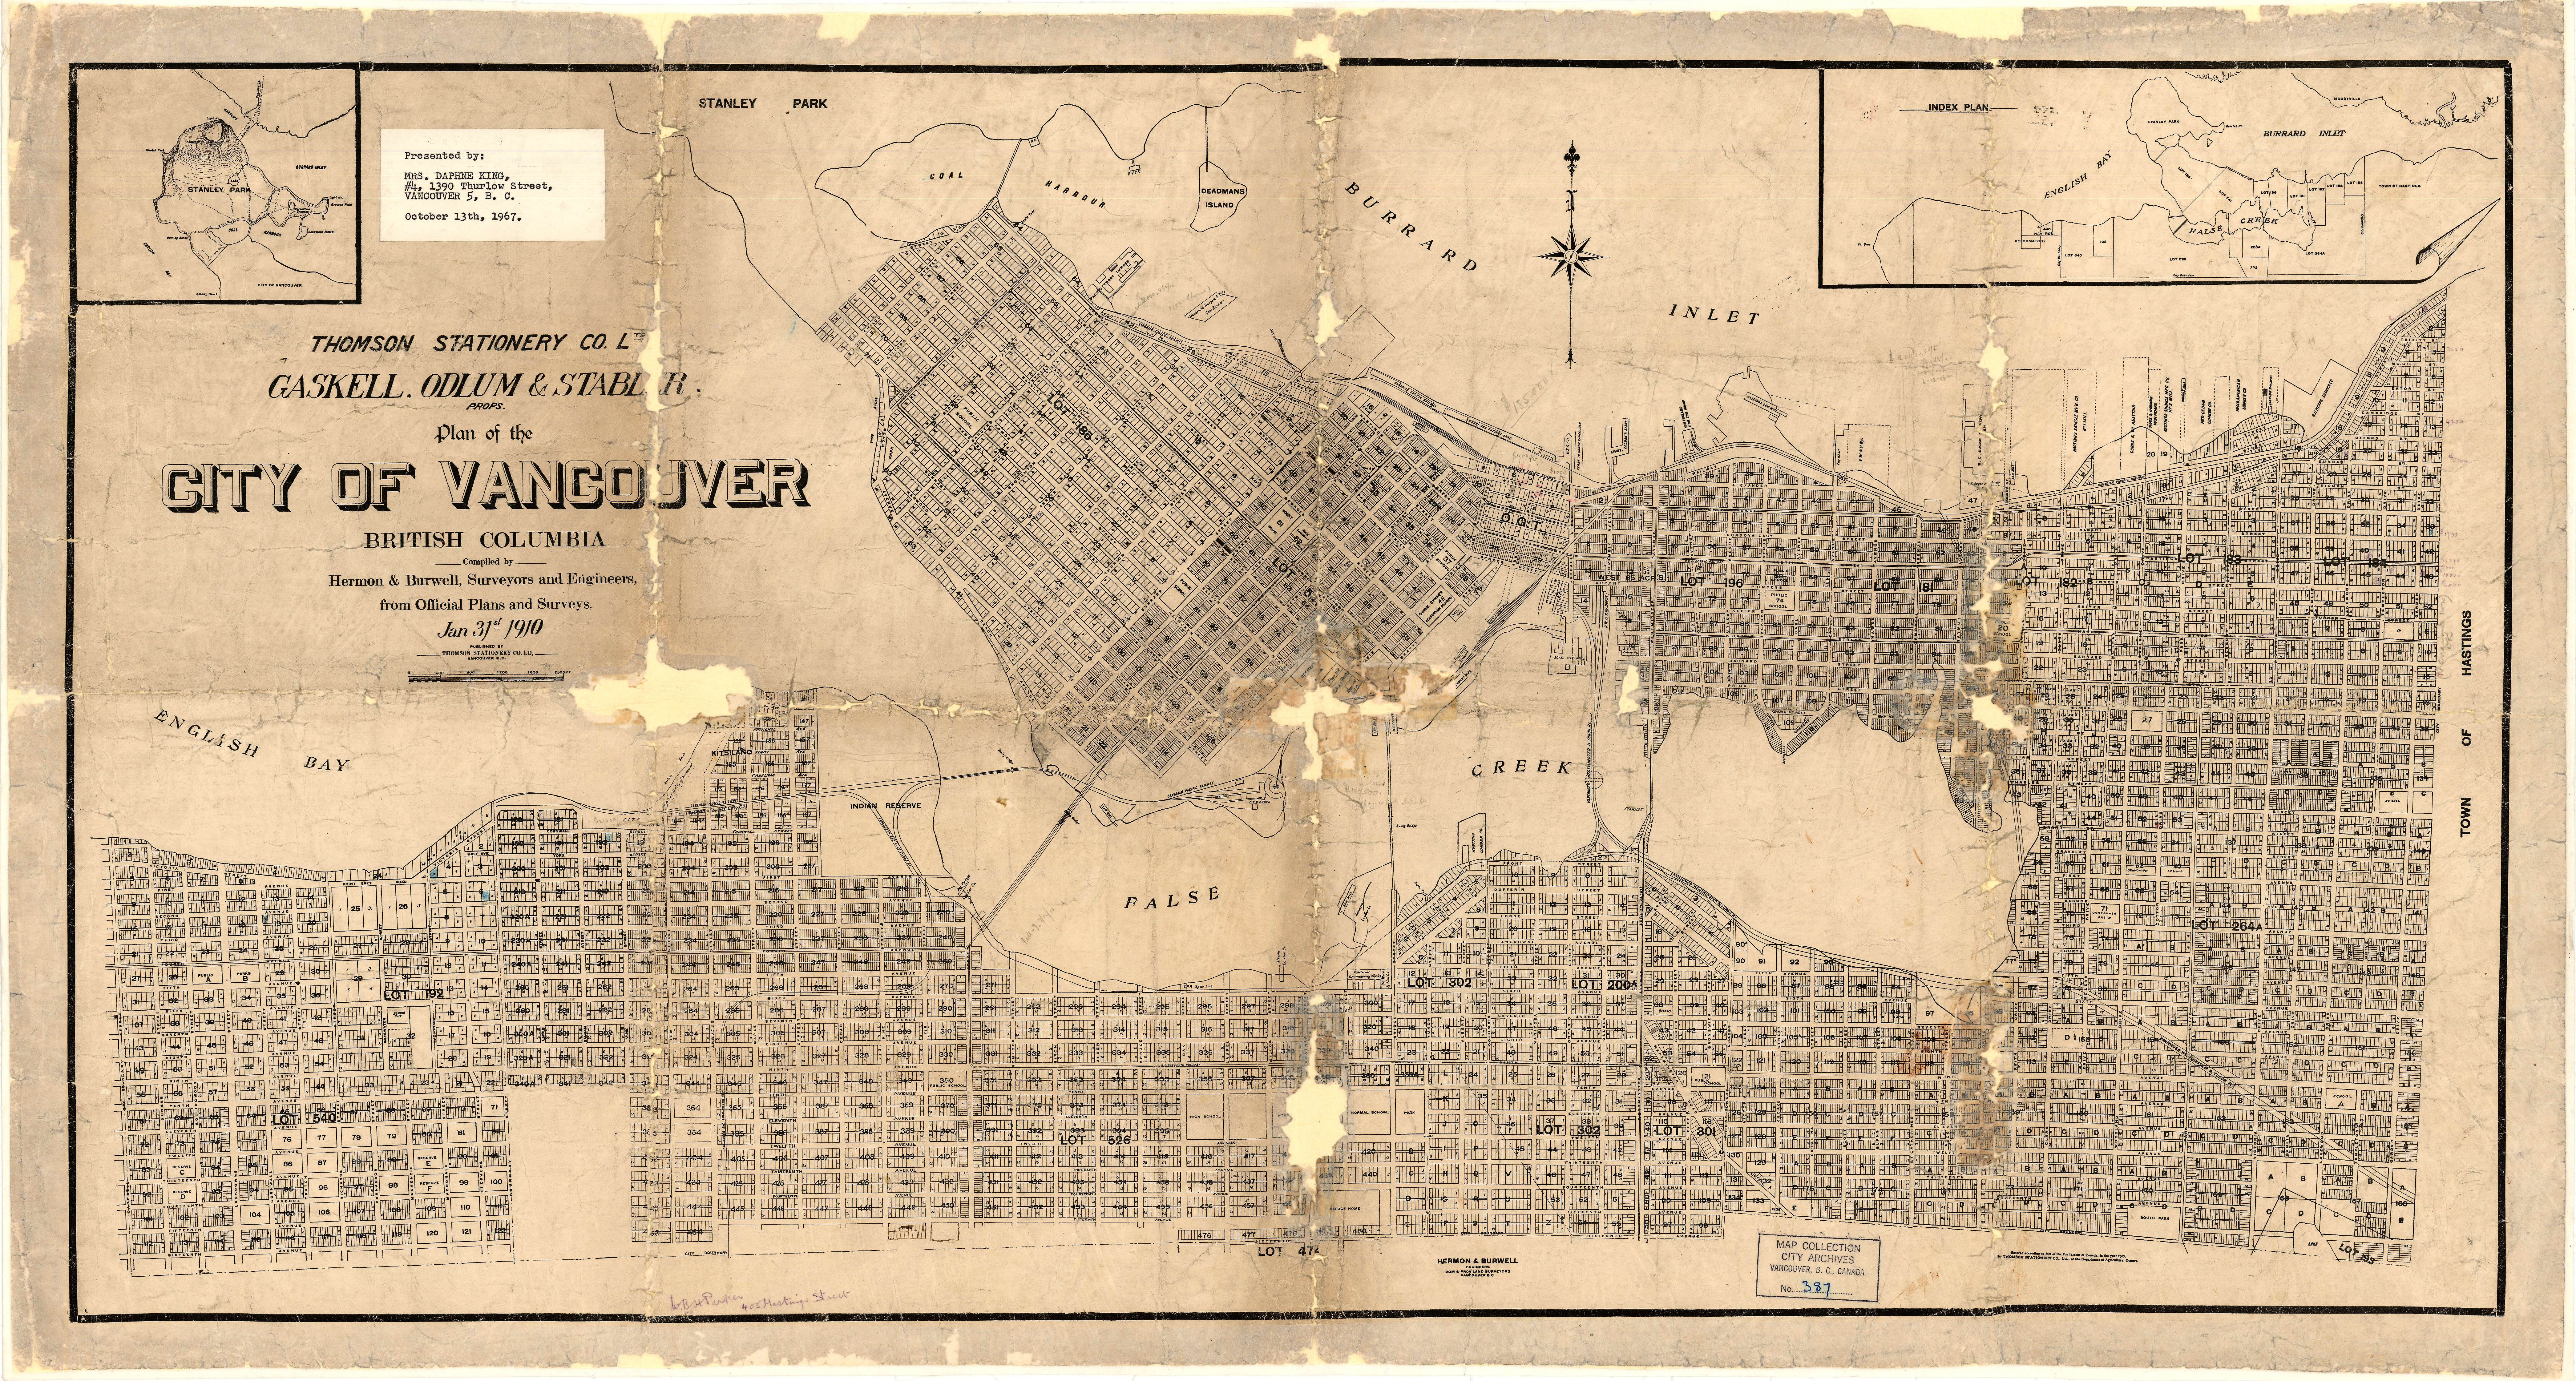 Plan Of The City Of Vancouver British Columbia City Of